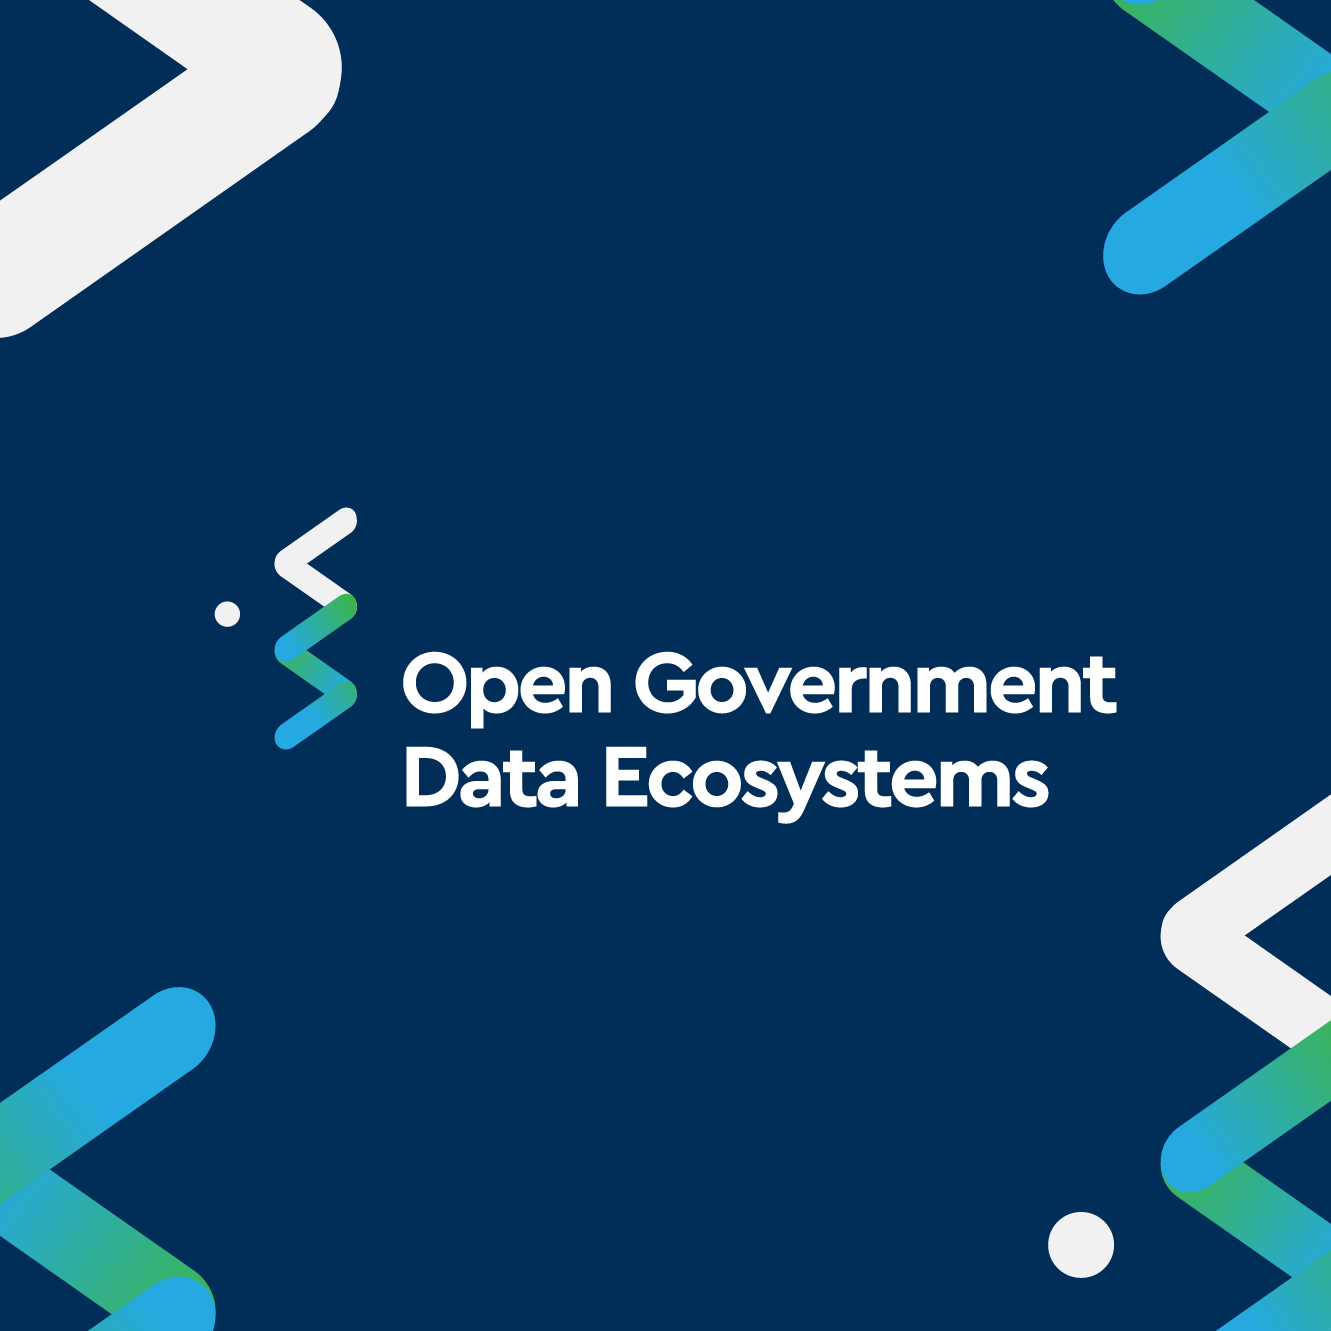 Open Government Data Ecosystems